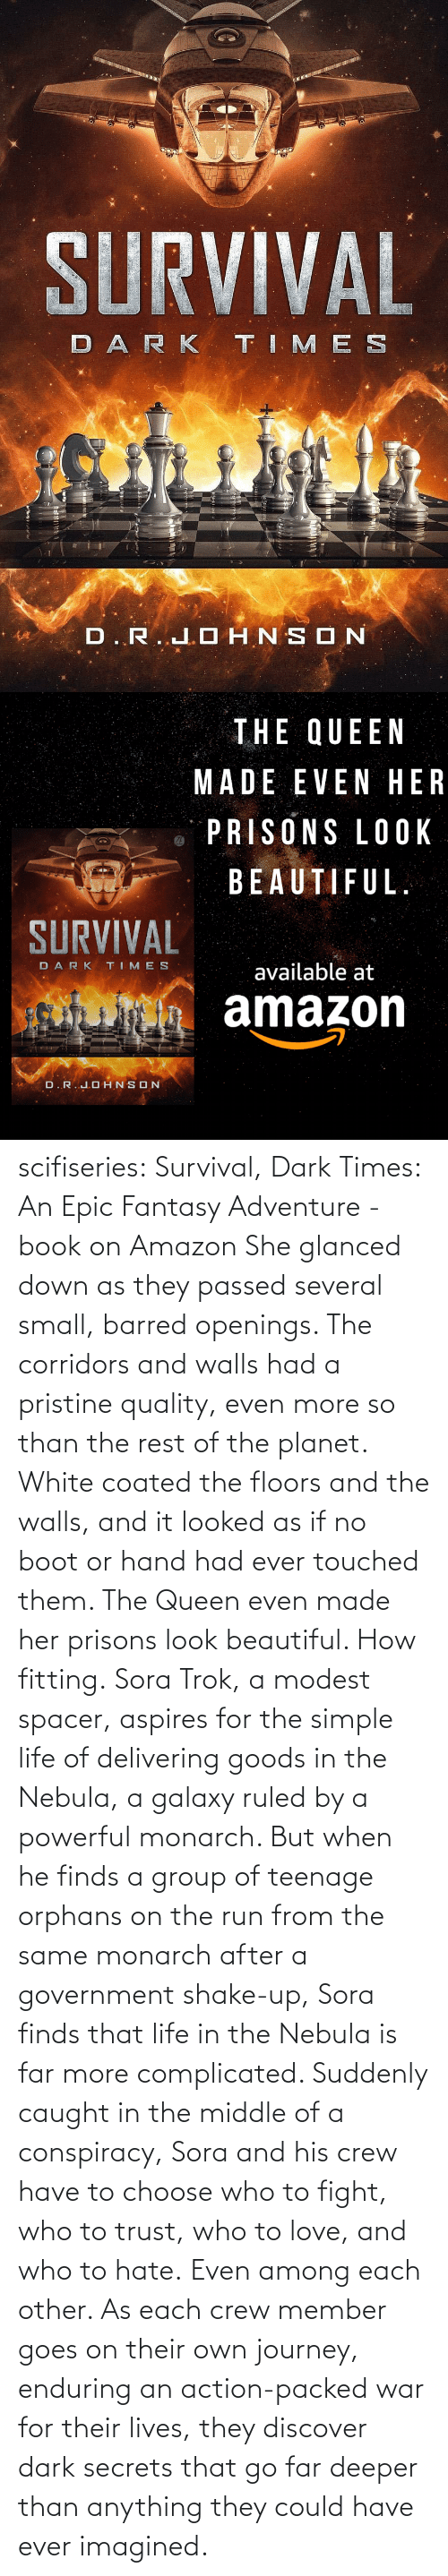 look: scifiseries: Survival, Dark Times: An Epic Fantasy Adventure - book on Amazon  She glanced down as they  passed several small, barred openings. The corridors and walls had a  pristine quality, even more so than the rest of the planet. White coated  the floors and the walls, and it looked as if no boot or hand had ever  touched them.  The Queen even made her prisons look beautiful.  How fitting. Sora  Trok, a modest spacer, aspires for the simple life of delivering goods  in the Nebula, a galaxy ruled by a powerful monarch. But when he finds a  group of teenage orphans on the run from the same monarch after a  government shake-up, Sora finds that life in the Nebula is far more complicated.  Suddenly  caught in the middle of a conspiracy, Sora and his crew have to choose  who to fight, who to trust, who to love, and who to hate. Even among each other.  As  each crew member goes on their own journey, enduring an action-packed  war for their lives, they discover dark secrets that go far deeper than  anything they could have ever imagined.